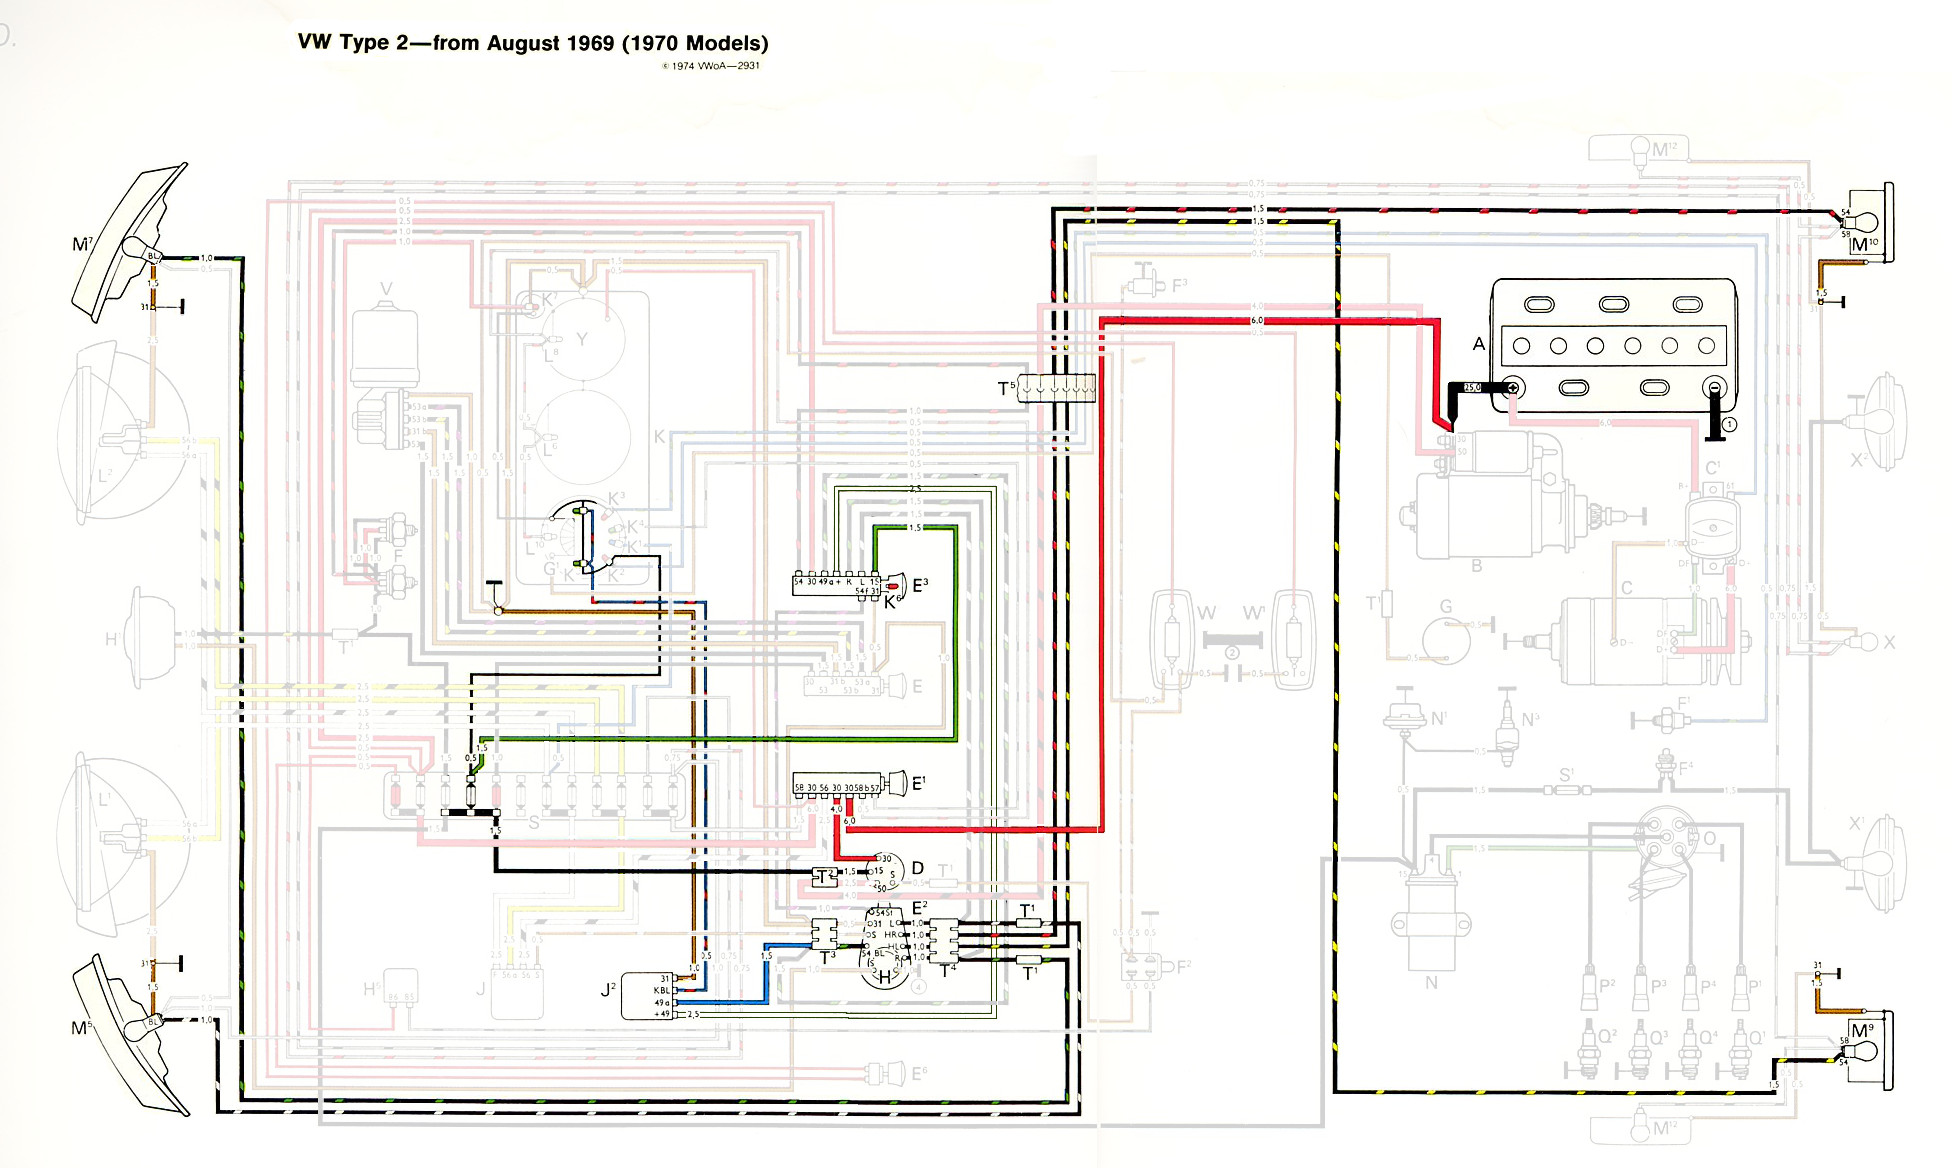 Type 2 Wiring Diagrams European Diagram Symbols